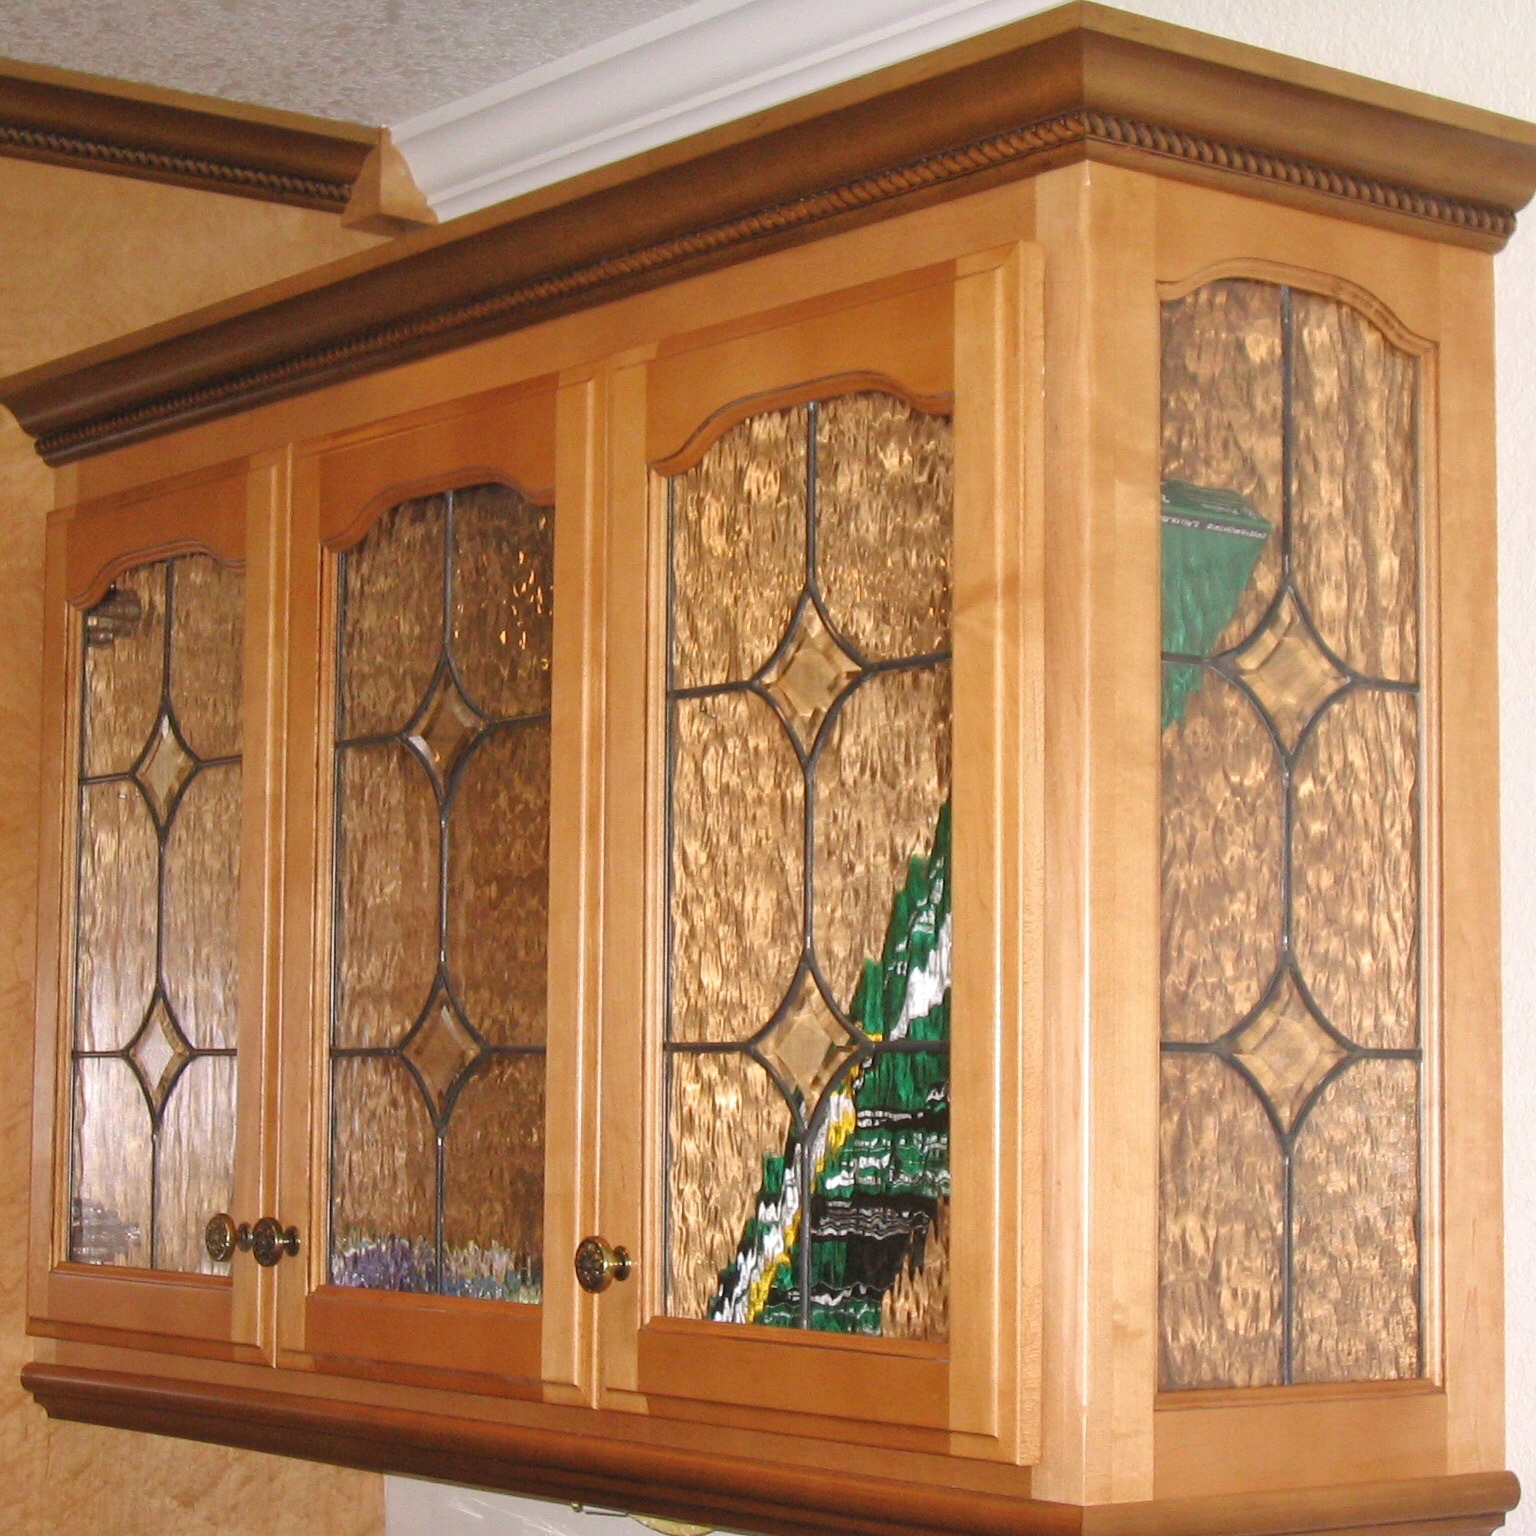 custom leaded glass cabinet door inserts waterglass clear textured privacy glass beveled star diamond pattern eyebrow arch top legacy glass studios.jpg